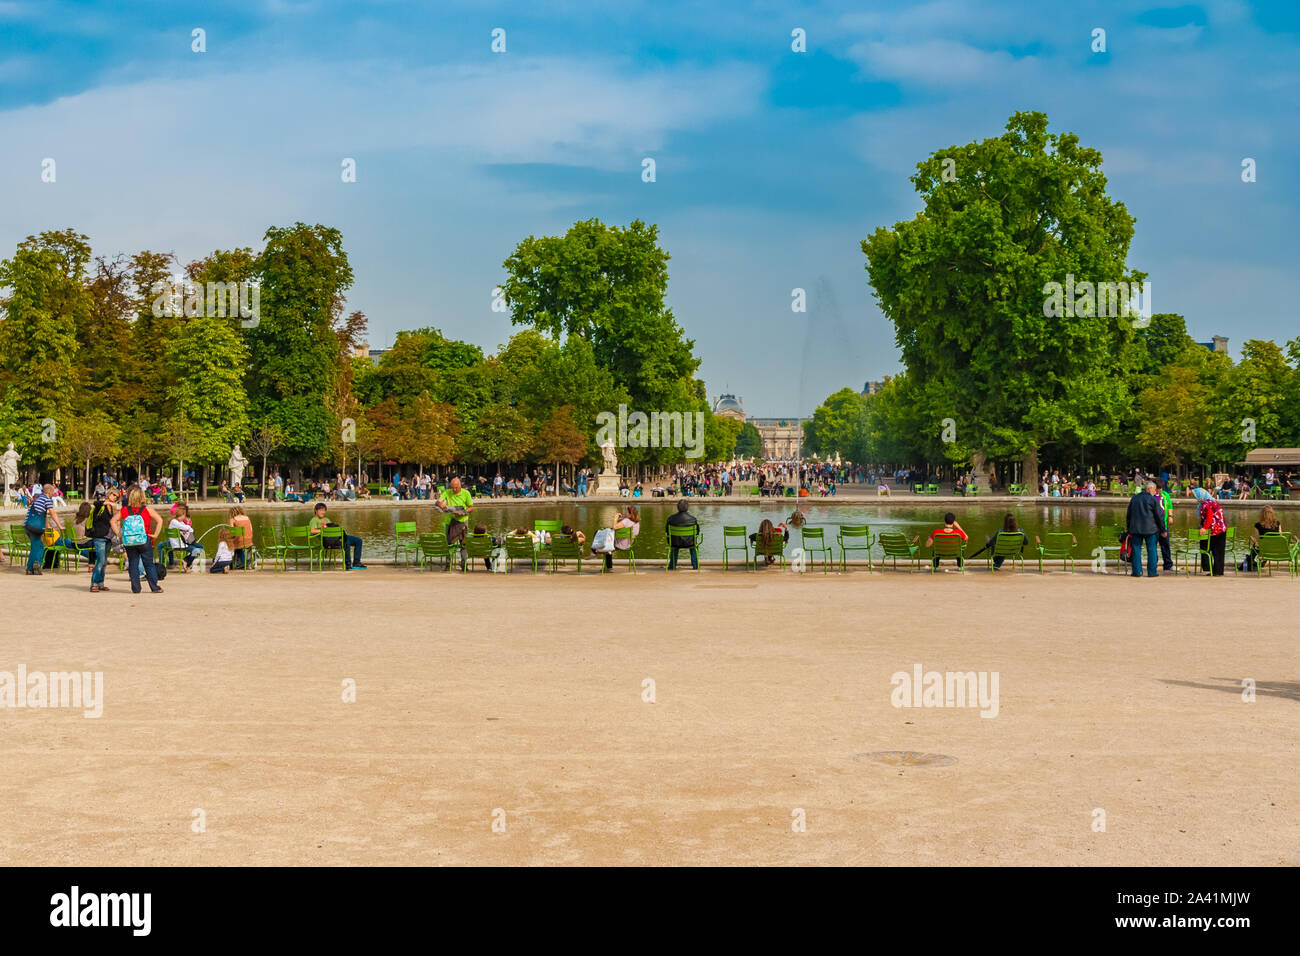 "Great panoramic view of the octagonal lake ""Bassin Octogonal"" with green chairs in the popular Tuileries Garden in Paris. Visitors celebrate, meet,... Stock Photo"